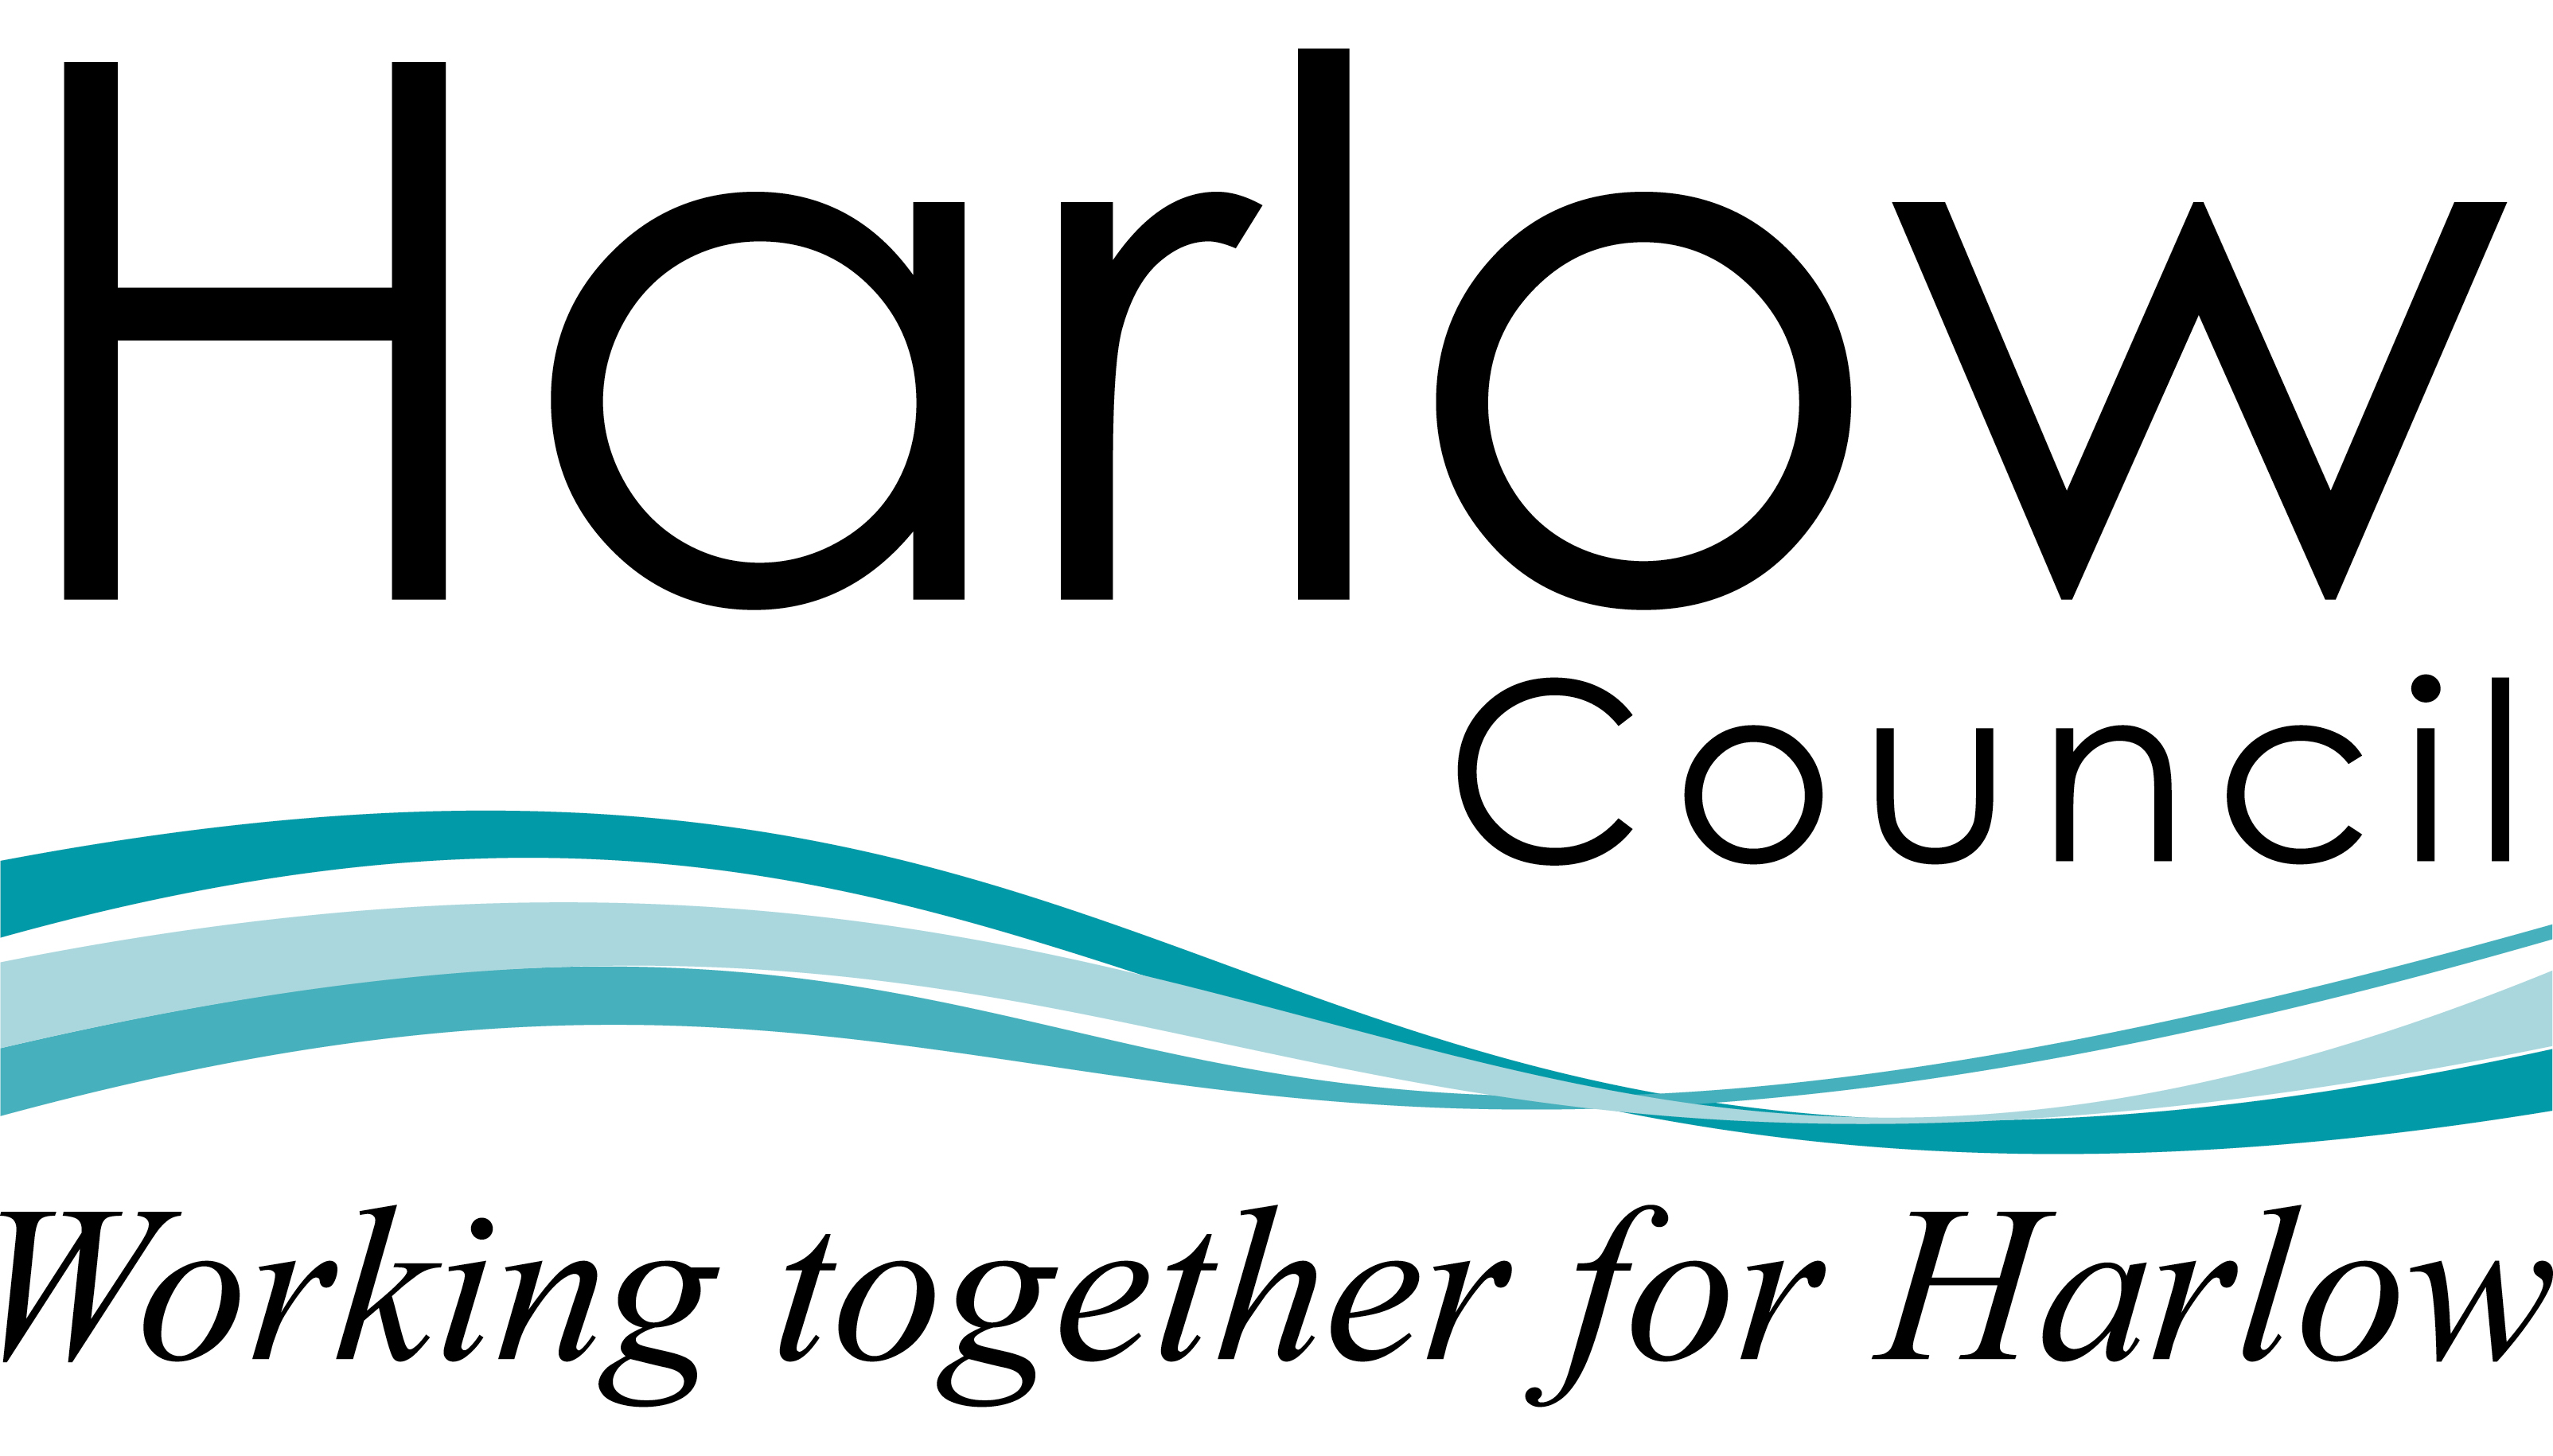 Harlow council logo leads to Harlow Council website